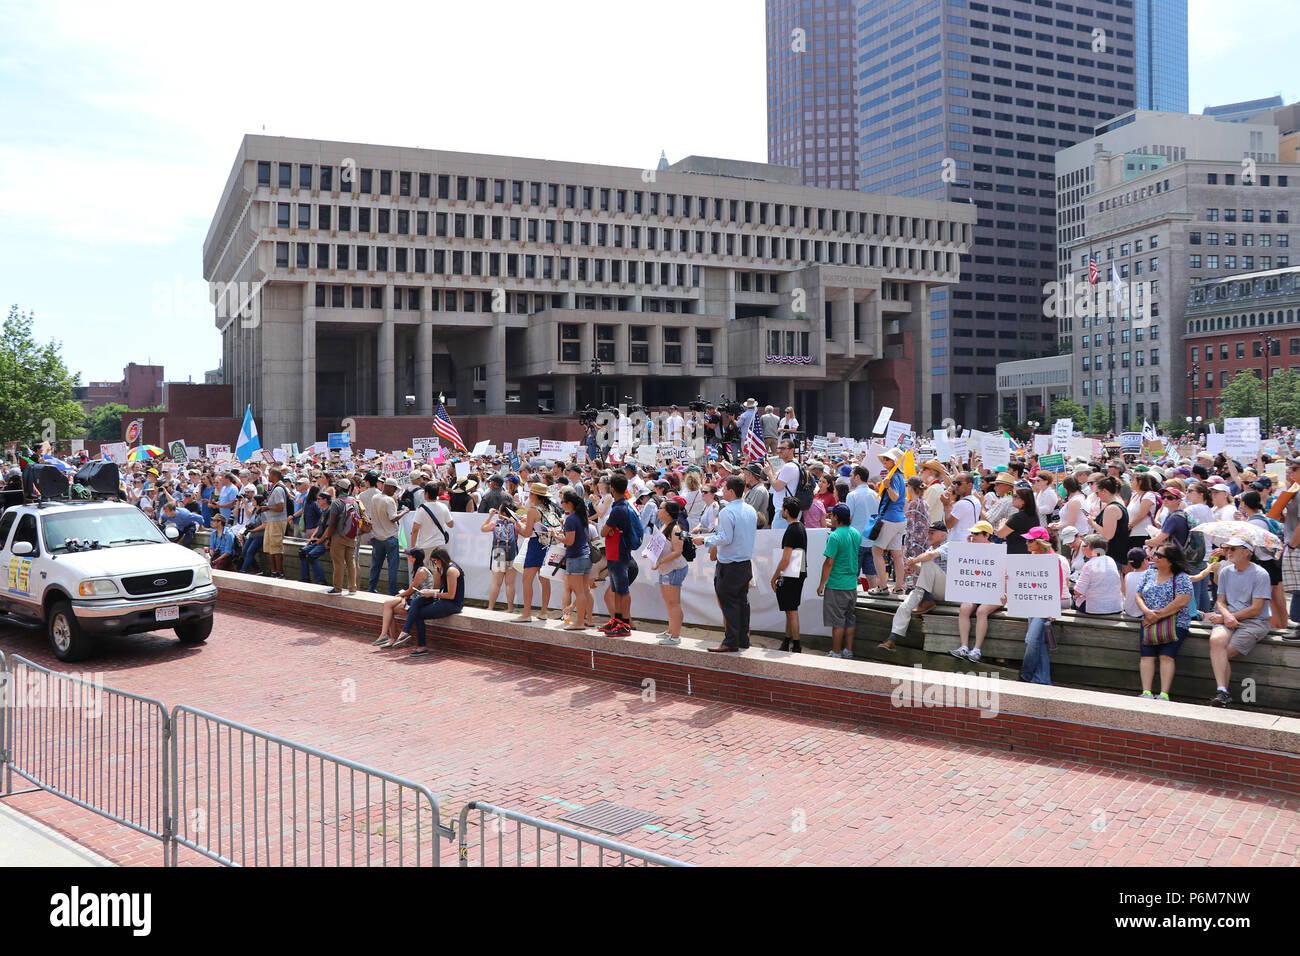 Boston, Massachusetts, USA. 30th June, 2018. IMMIGRATION BOSTON Citizens rally and march against separation of immigrant and migrant families and their children by the government and for the closing of the ICE, the Immigration & Customs Enforcement agency and against President Trump's immigration policies.Approximately 15,000 participants rallied on City Hall Plaza and marched to Boston Common Where more speeches were delivered. Notable speakers were Sen. Elizabeth Warren, Sen. Edward Markey, and Congressman Joe Kennedy III.Along the way a small group of 4 or 5 masked individuals, consid Stock Photo